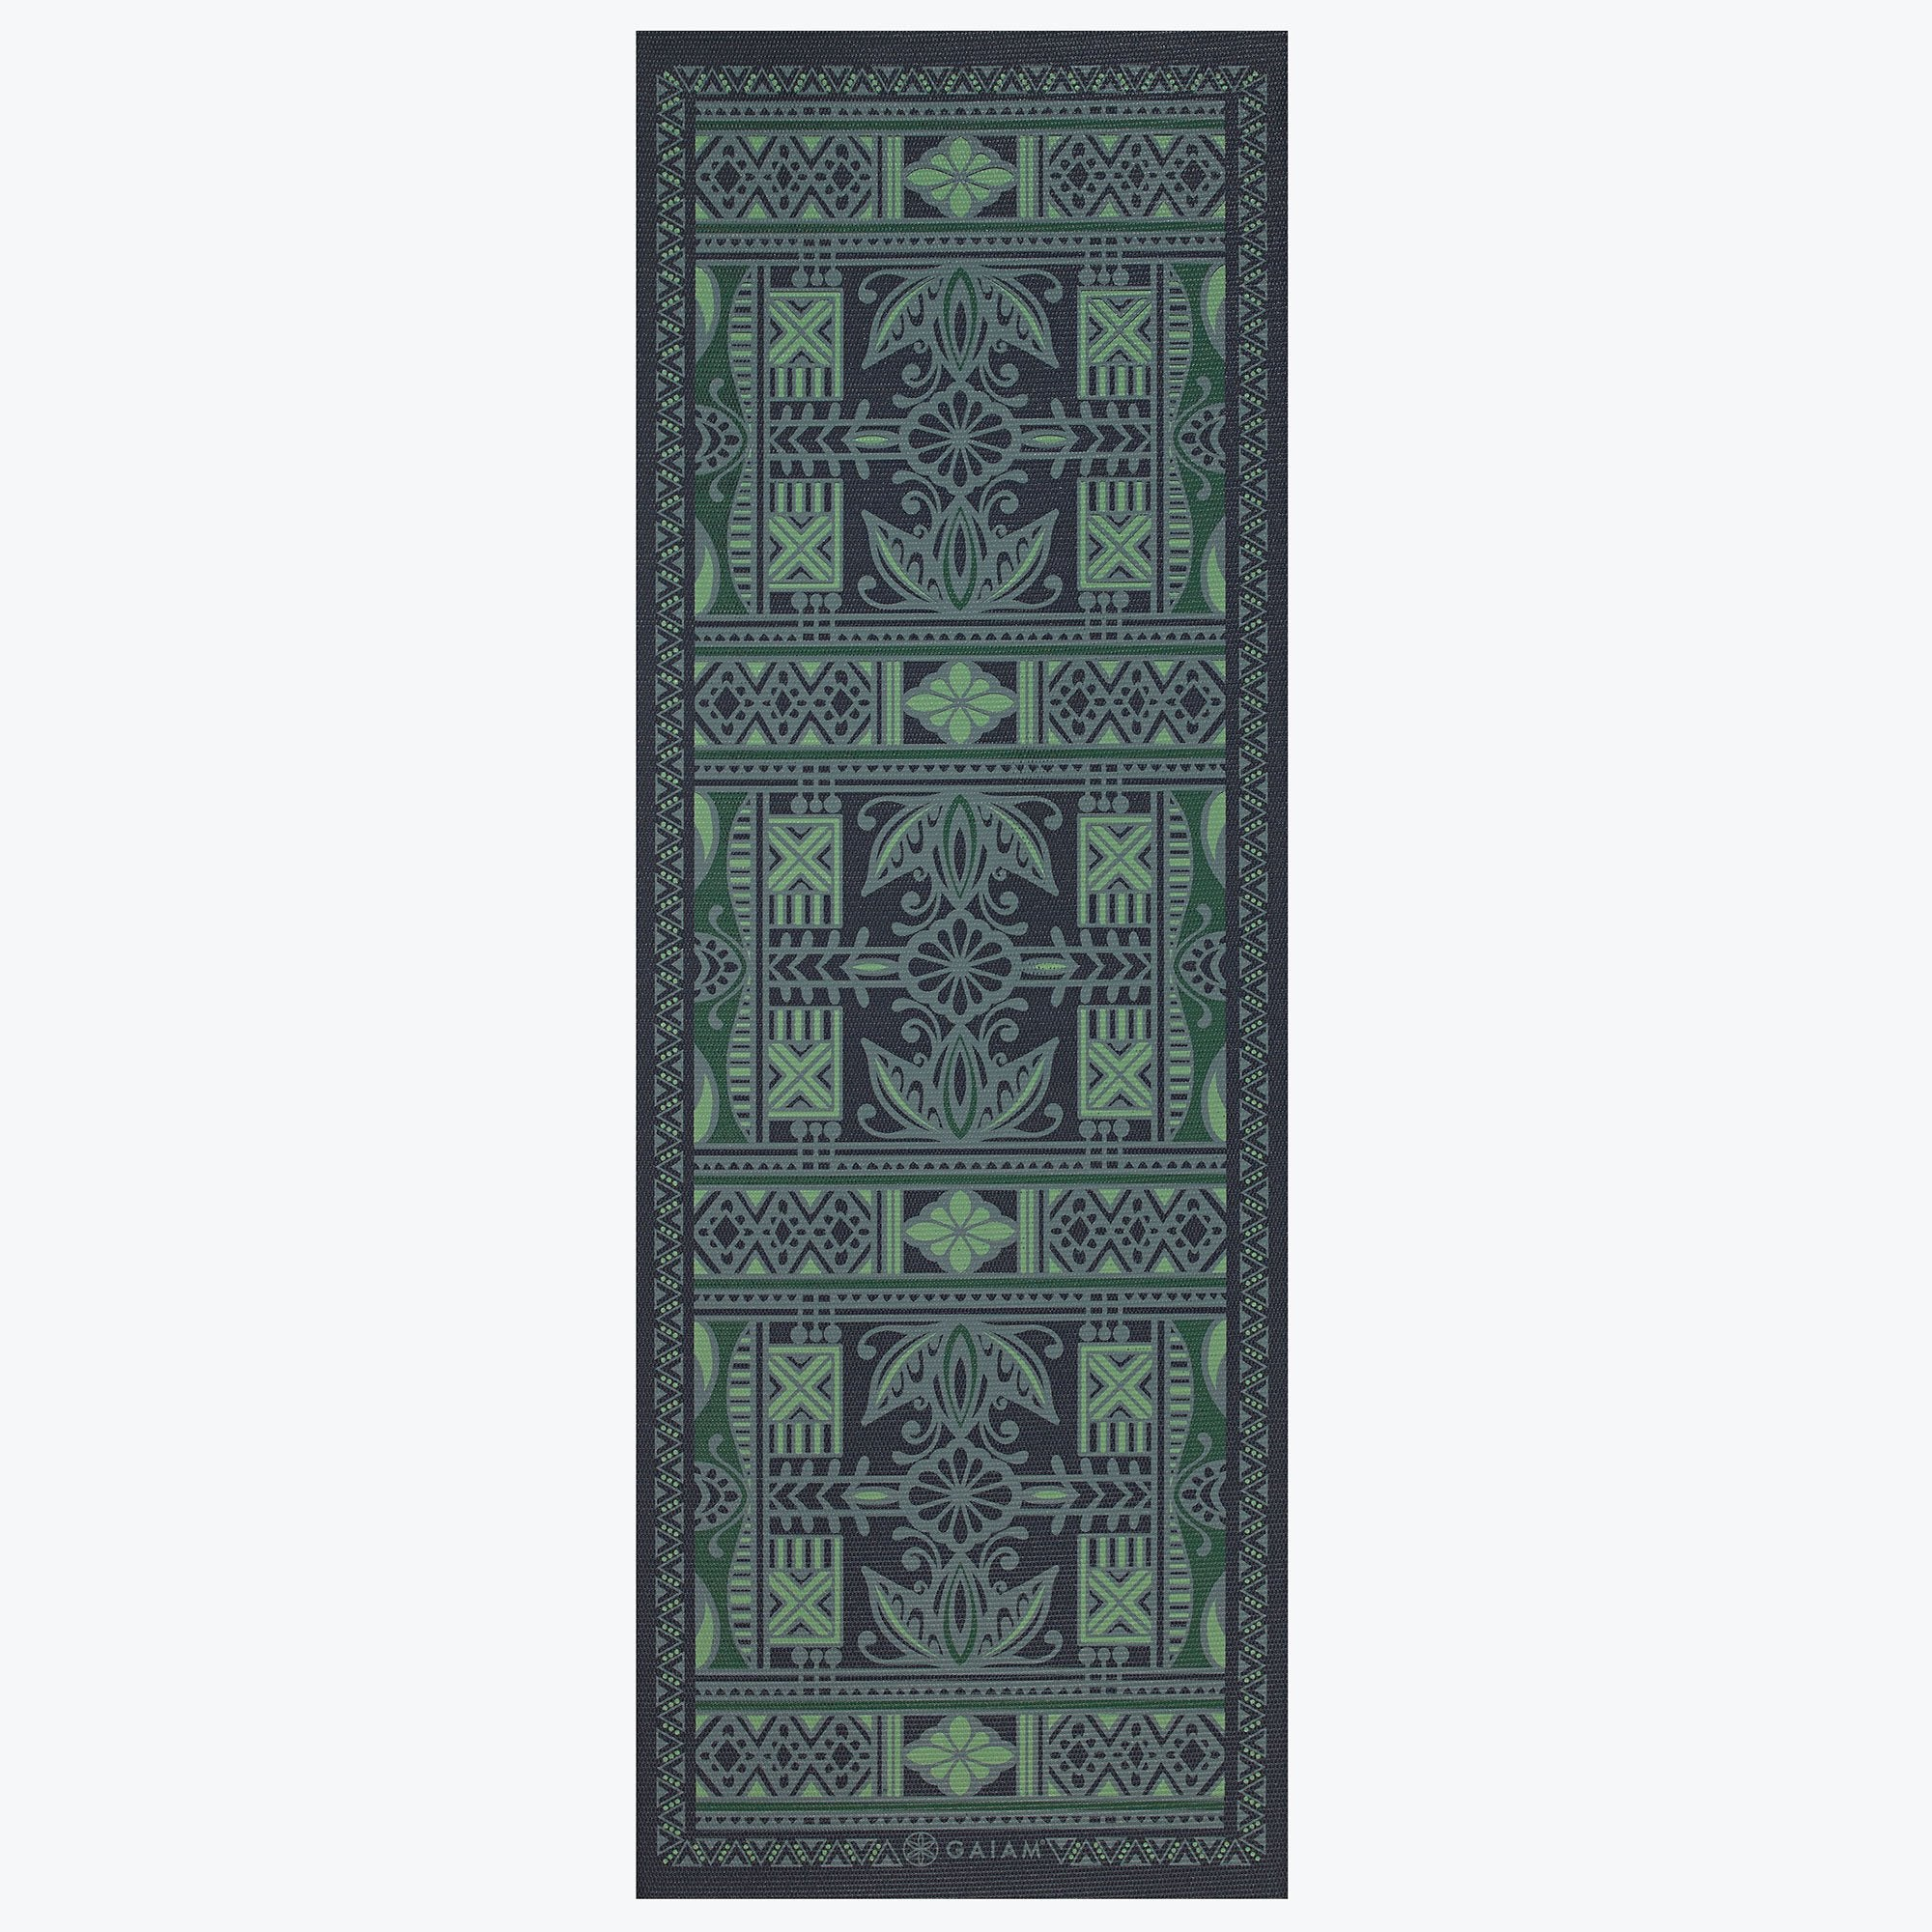 Gaiam Reversible 5mm Yoga Mat- Boho Folk